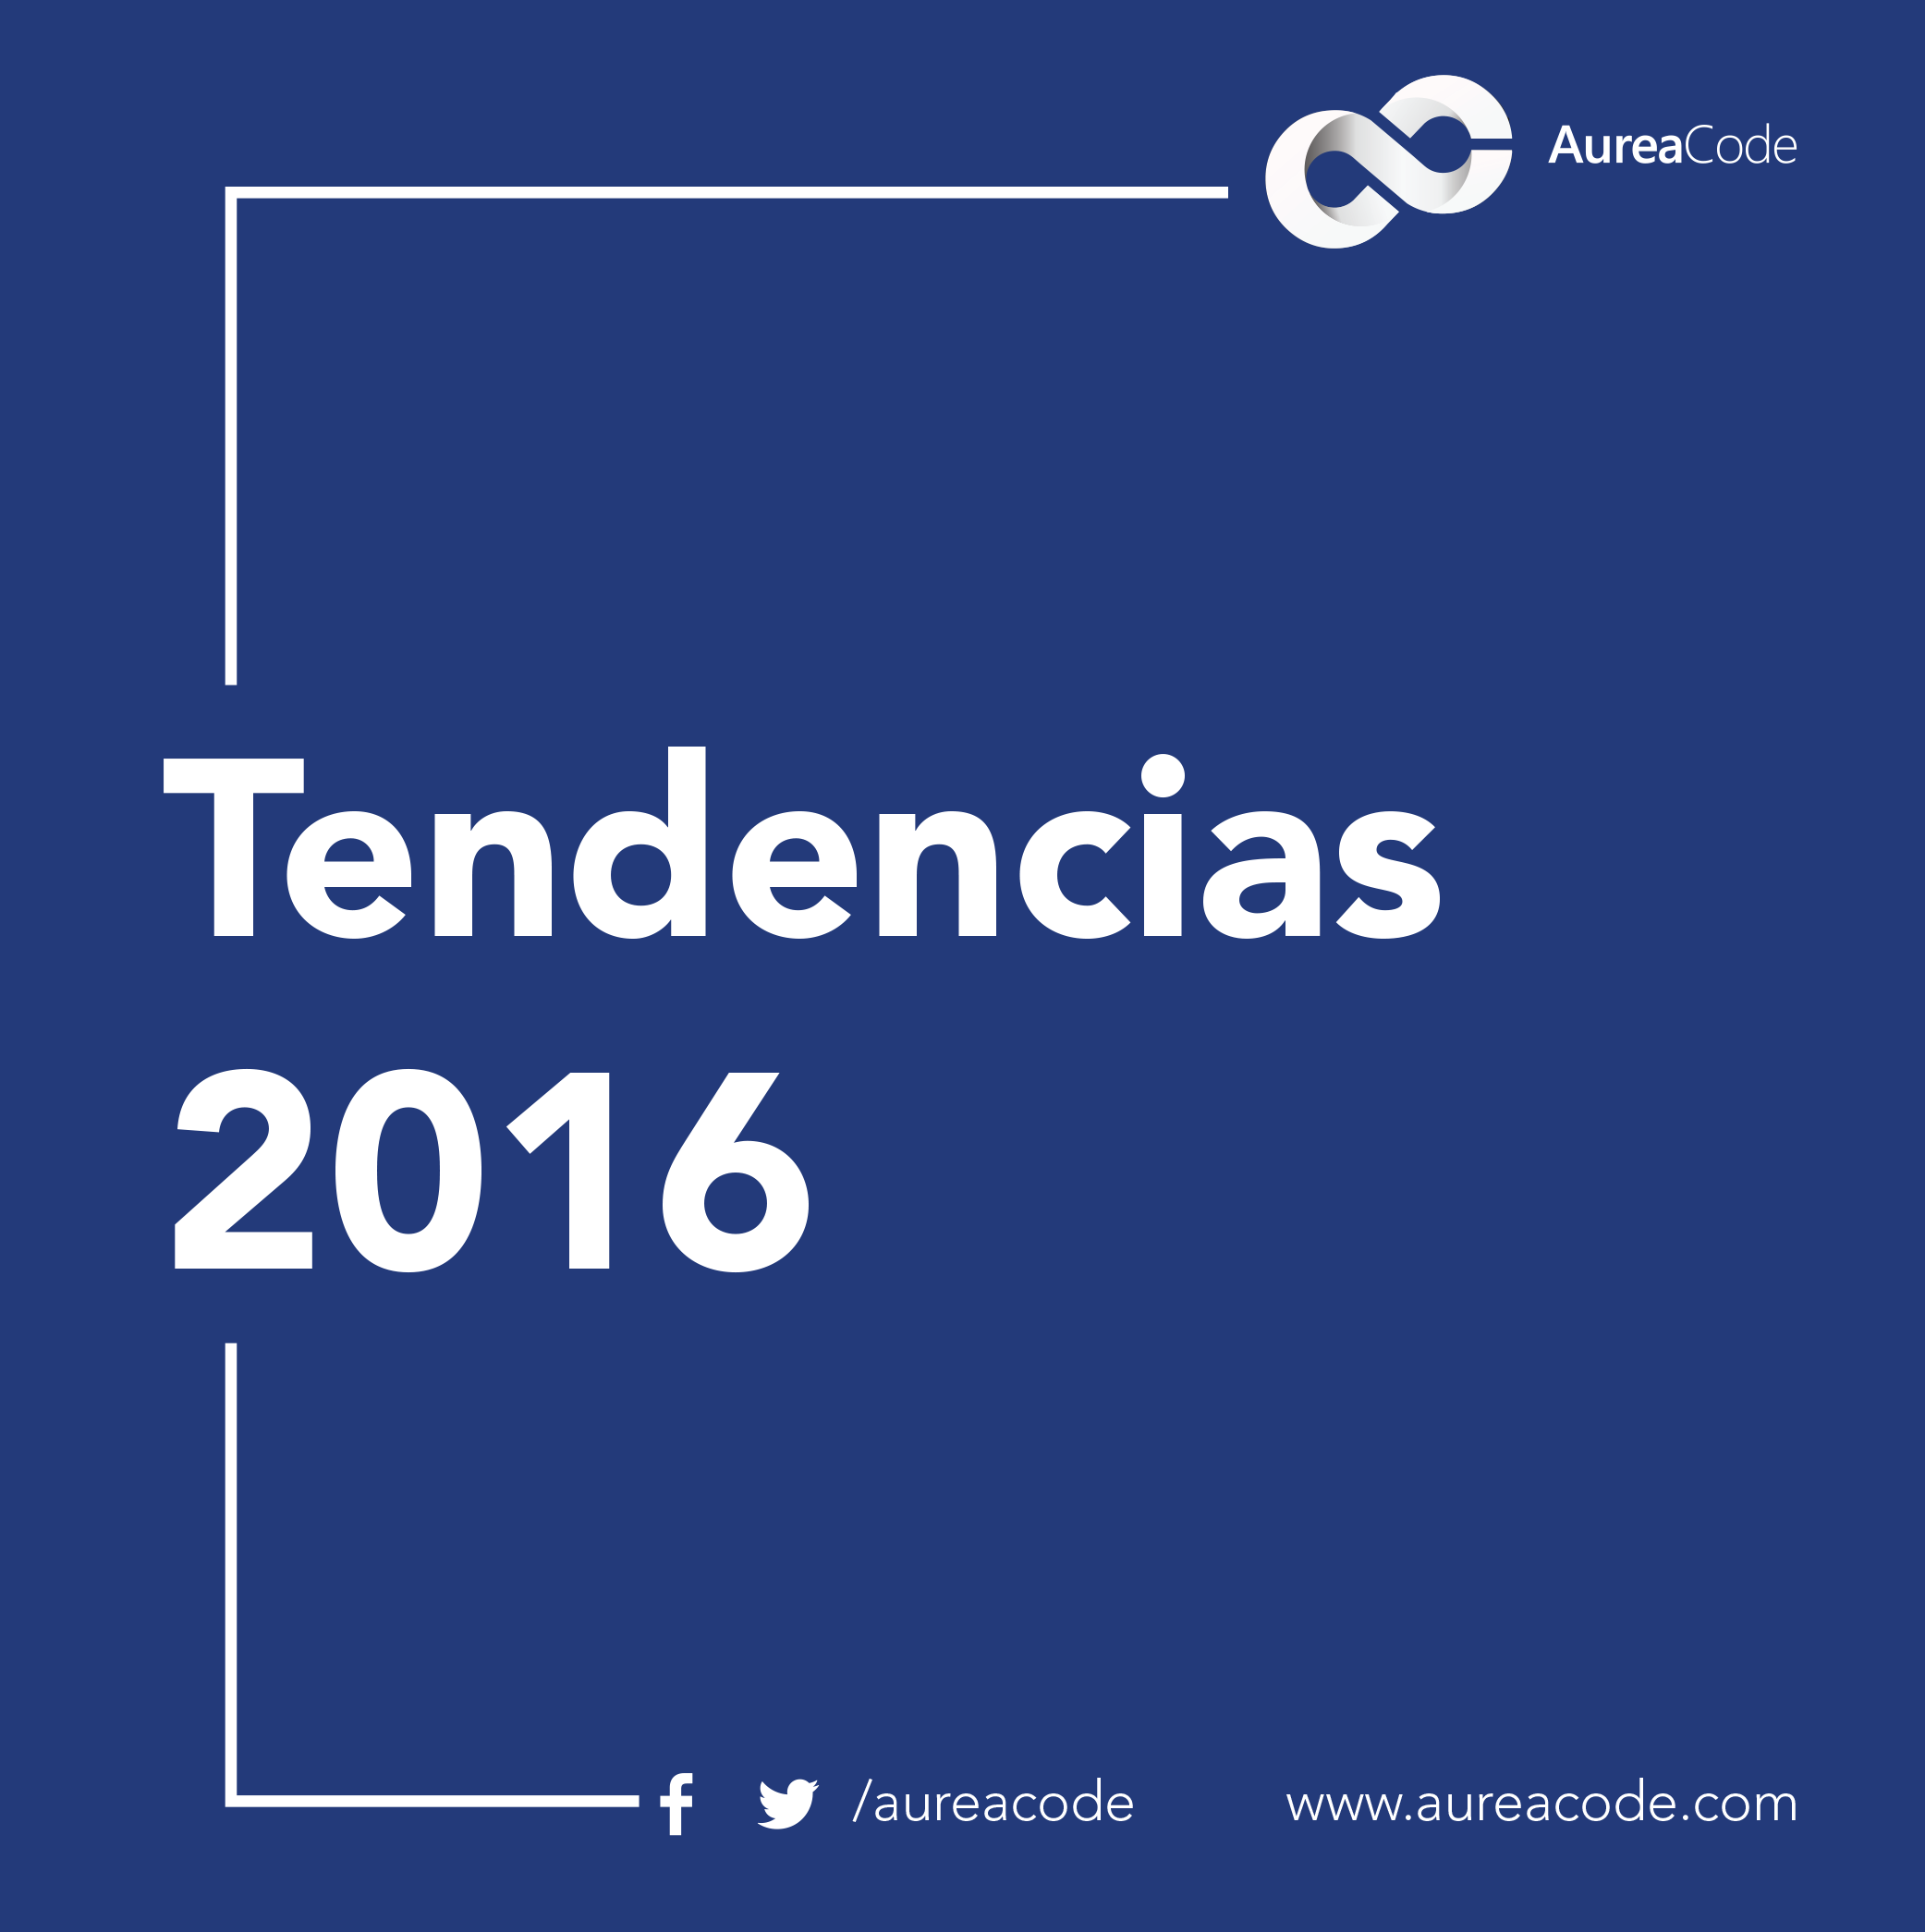 Tendencias 2016